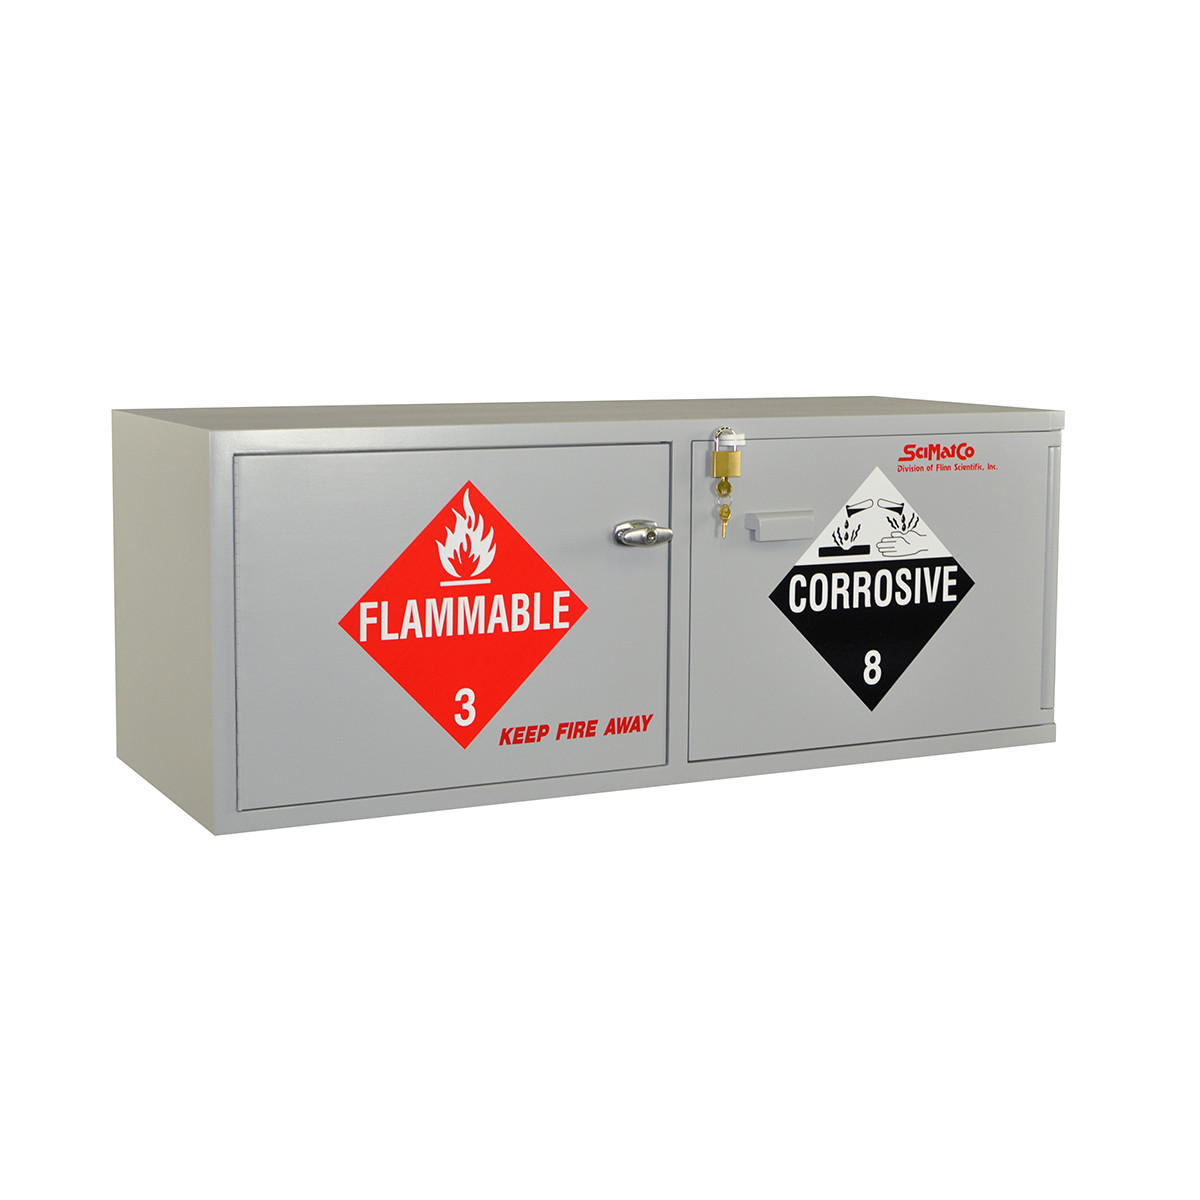 Scimatco SC9041 Gray Plywood Mini Stak-a-Cab Safety Storage Bench Combo Cabinet Acid 10 x 2.5 L//Flammable 8 x 1 gal Capacity